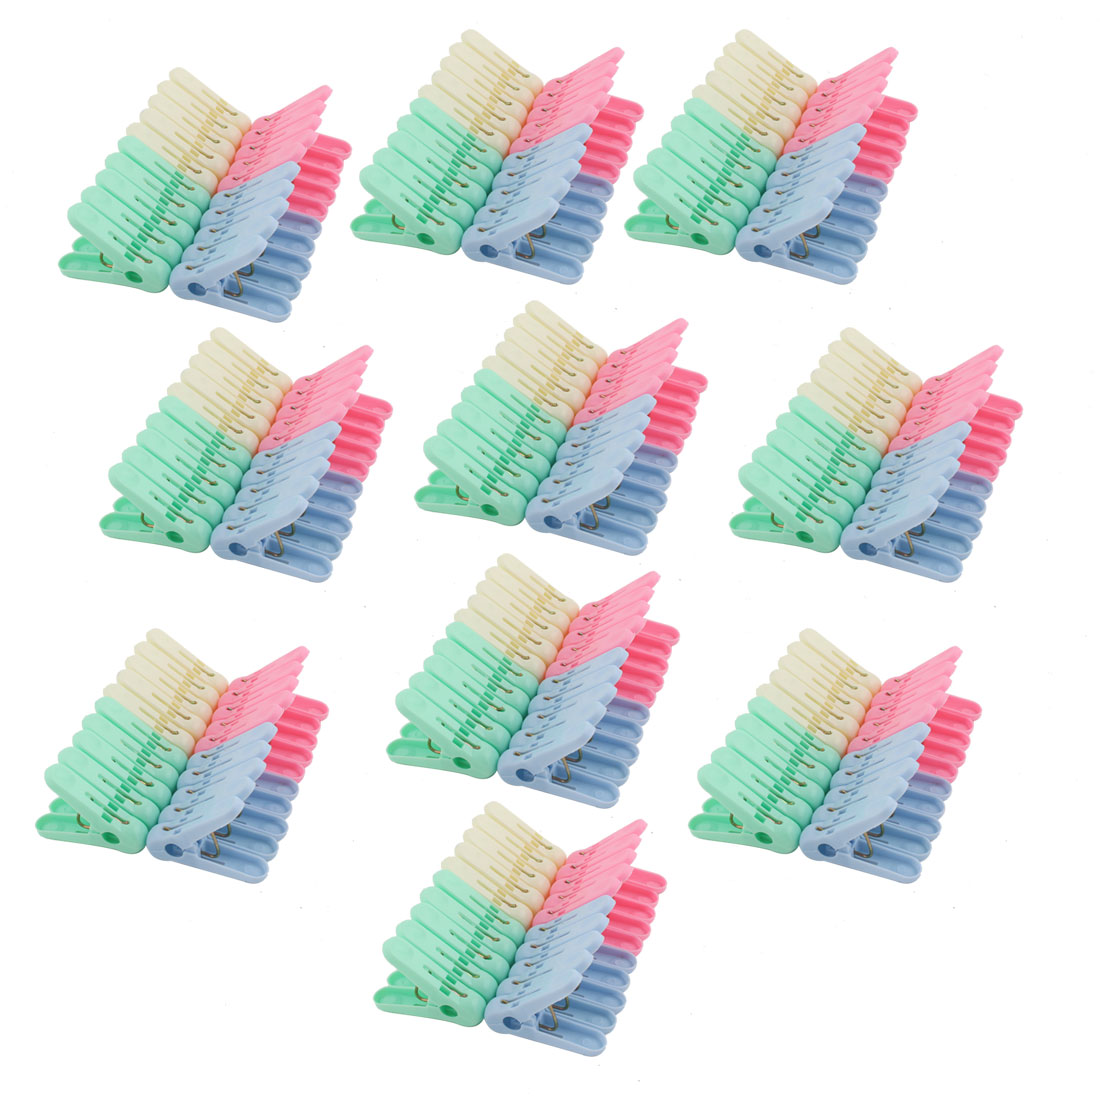 Household Plastic Socks Towel Bag Clothing Clothes Clips Clamp Clothespin 200pcs